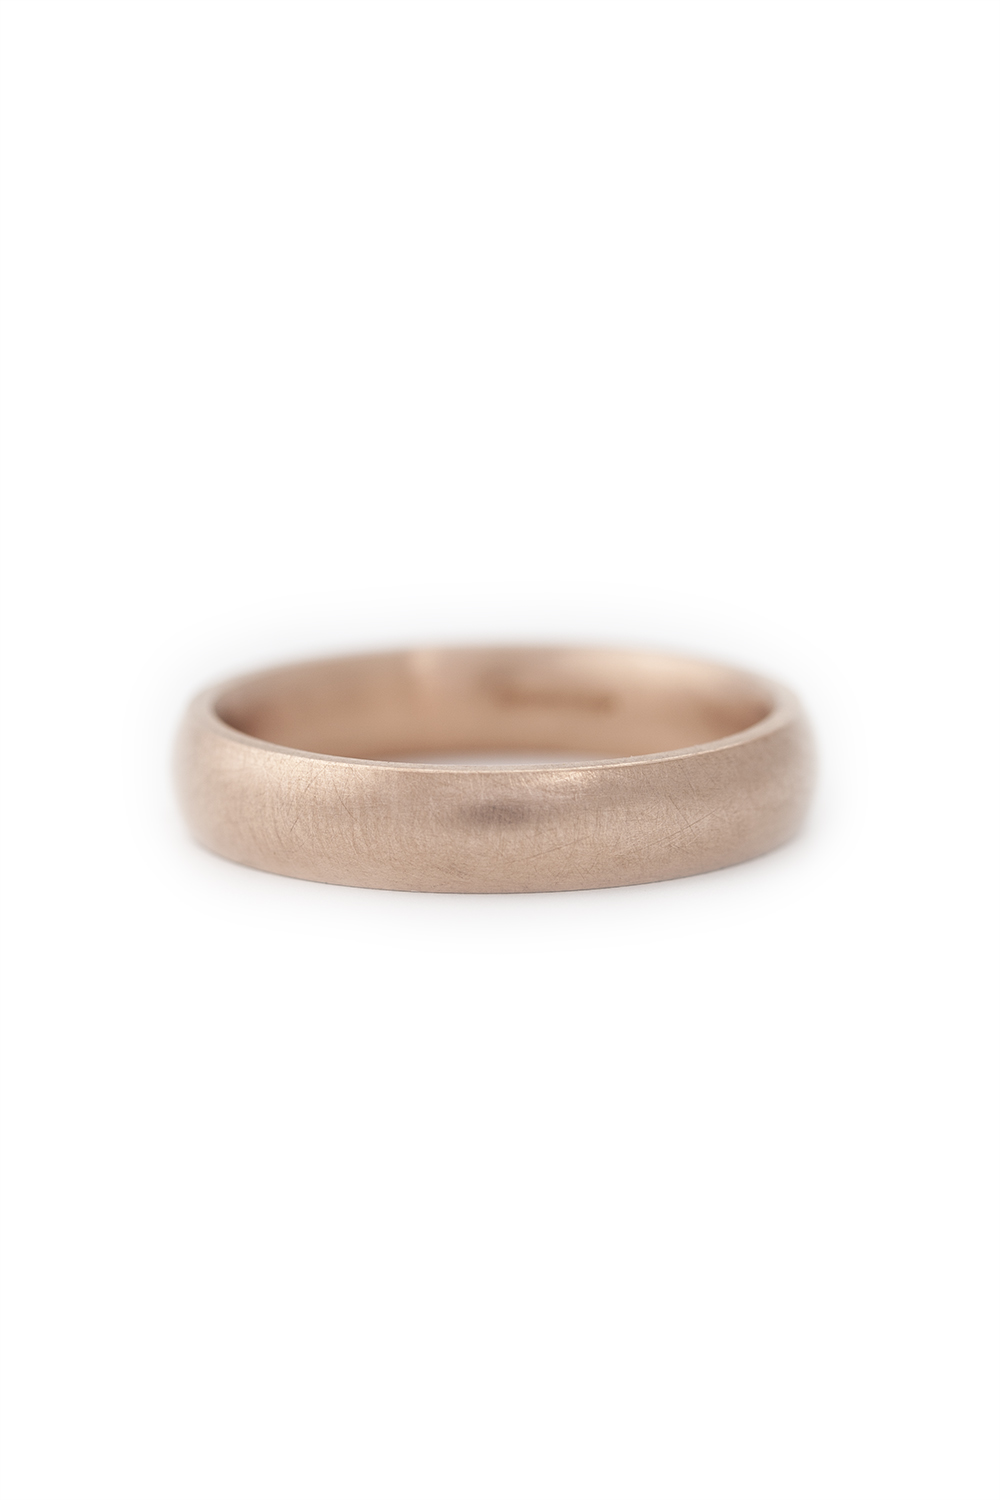 9ct Rose gold wide band with curve edge